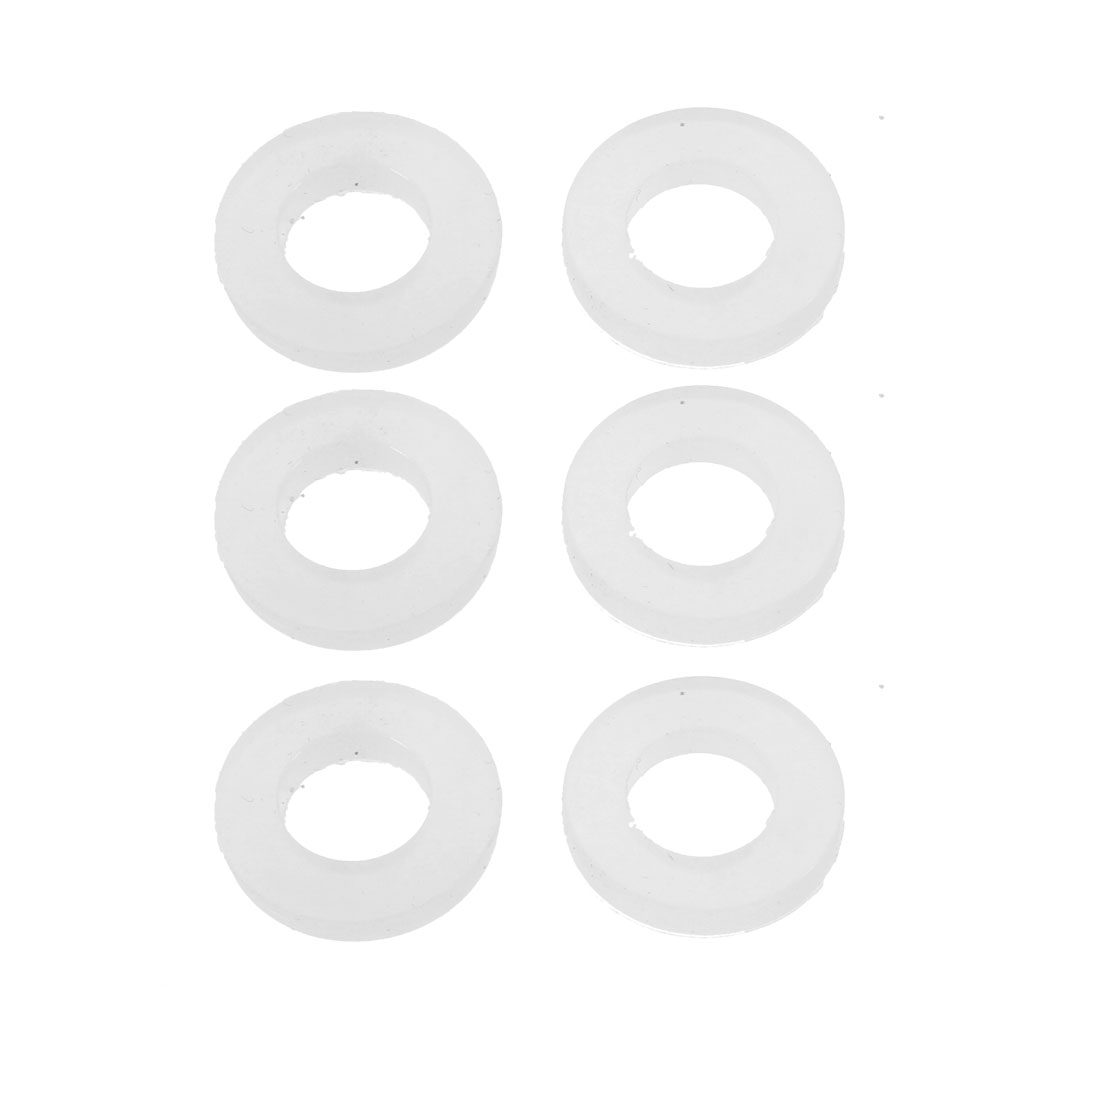 6pcs 10mm x 19mm White Sealing Ring O-shape Rubber Grommet 3mm Thickness